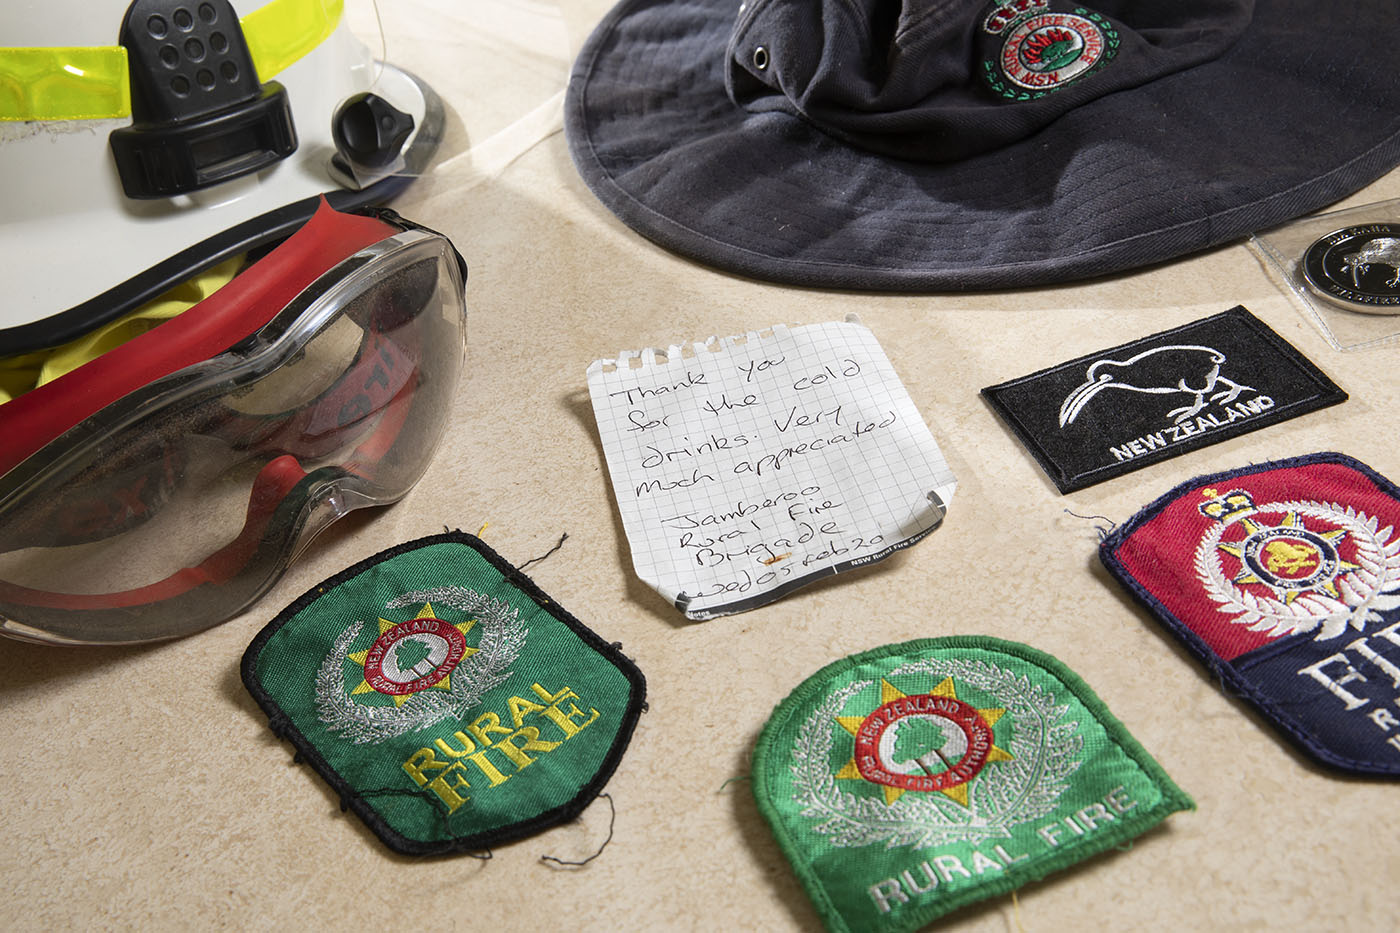 Cloth bages, a note, goggle and hat. The badges have embroidered text that reads 'Rural Fire', 'Fire' and 'New Zealand'.